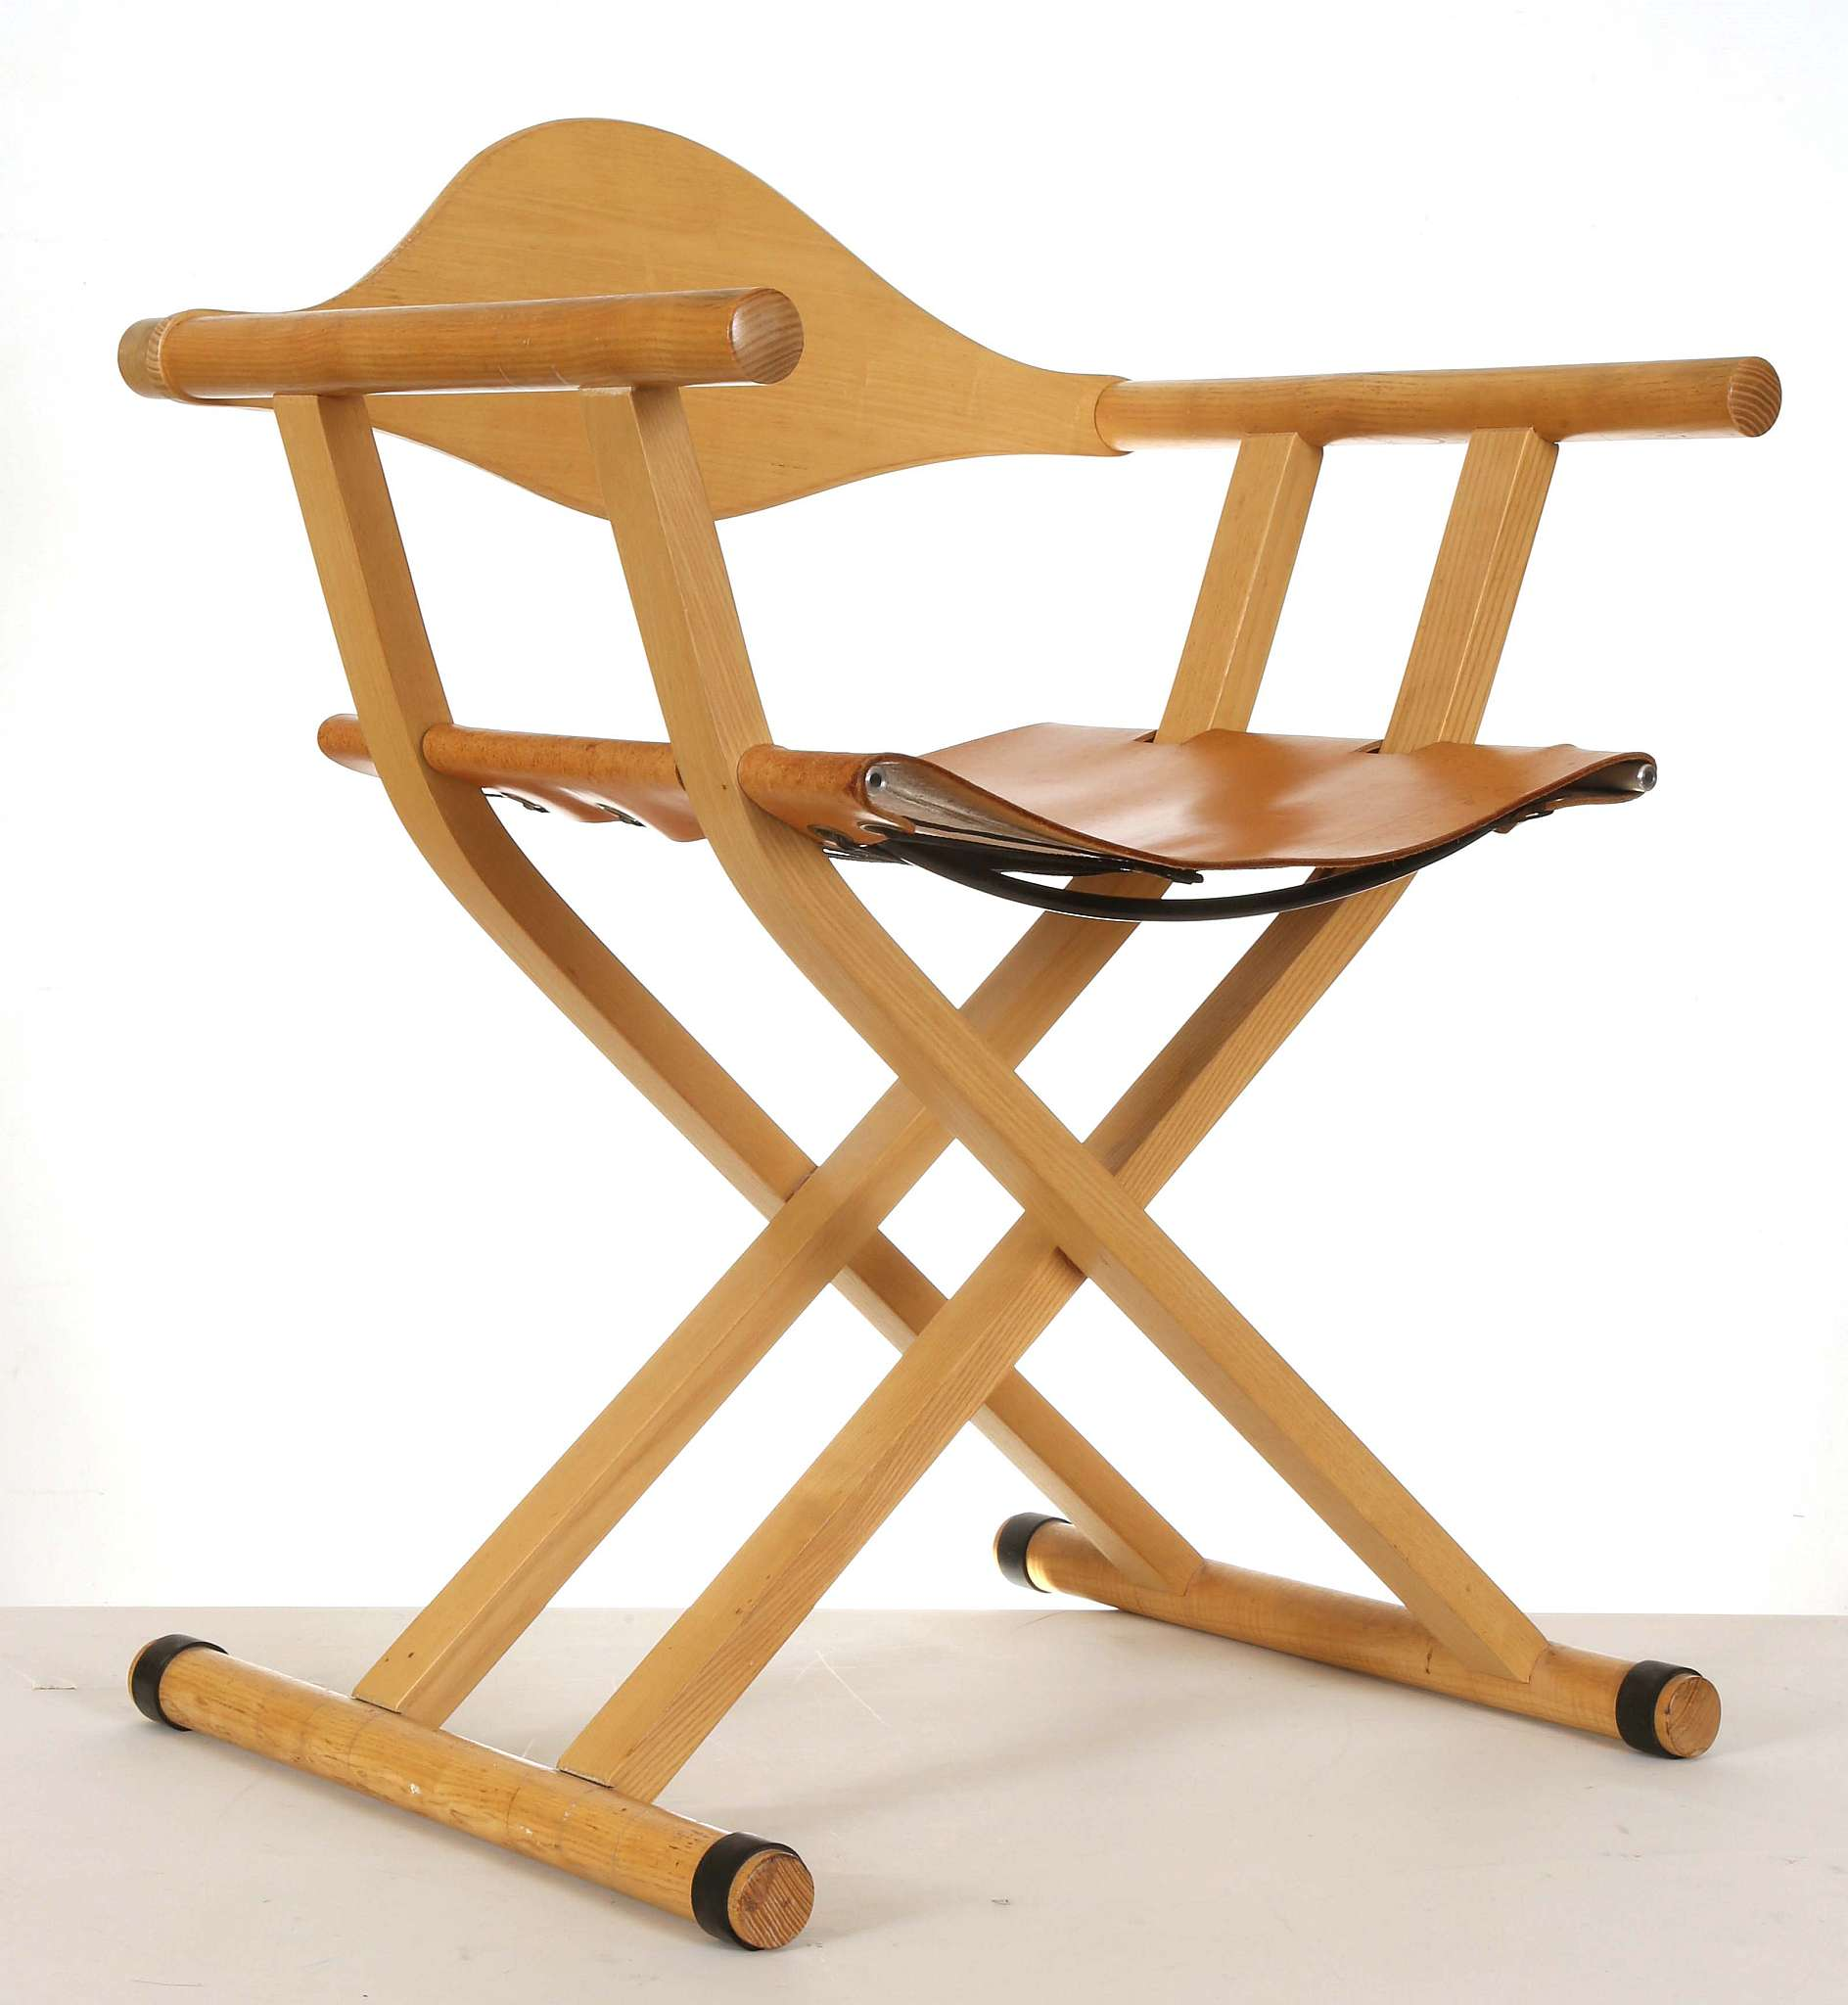 A Trannon C2 folding directors chair designed by David Colwell